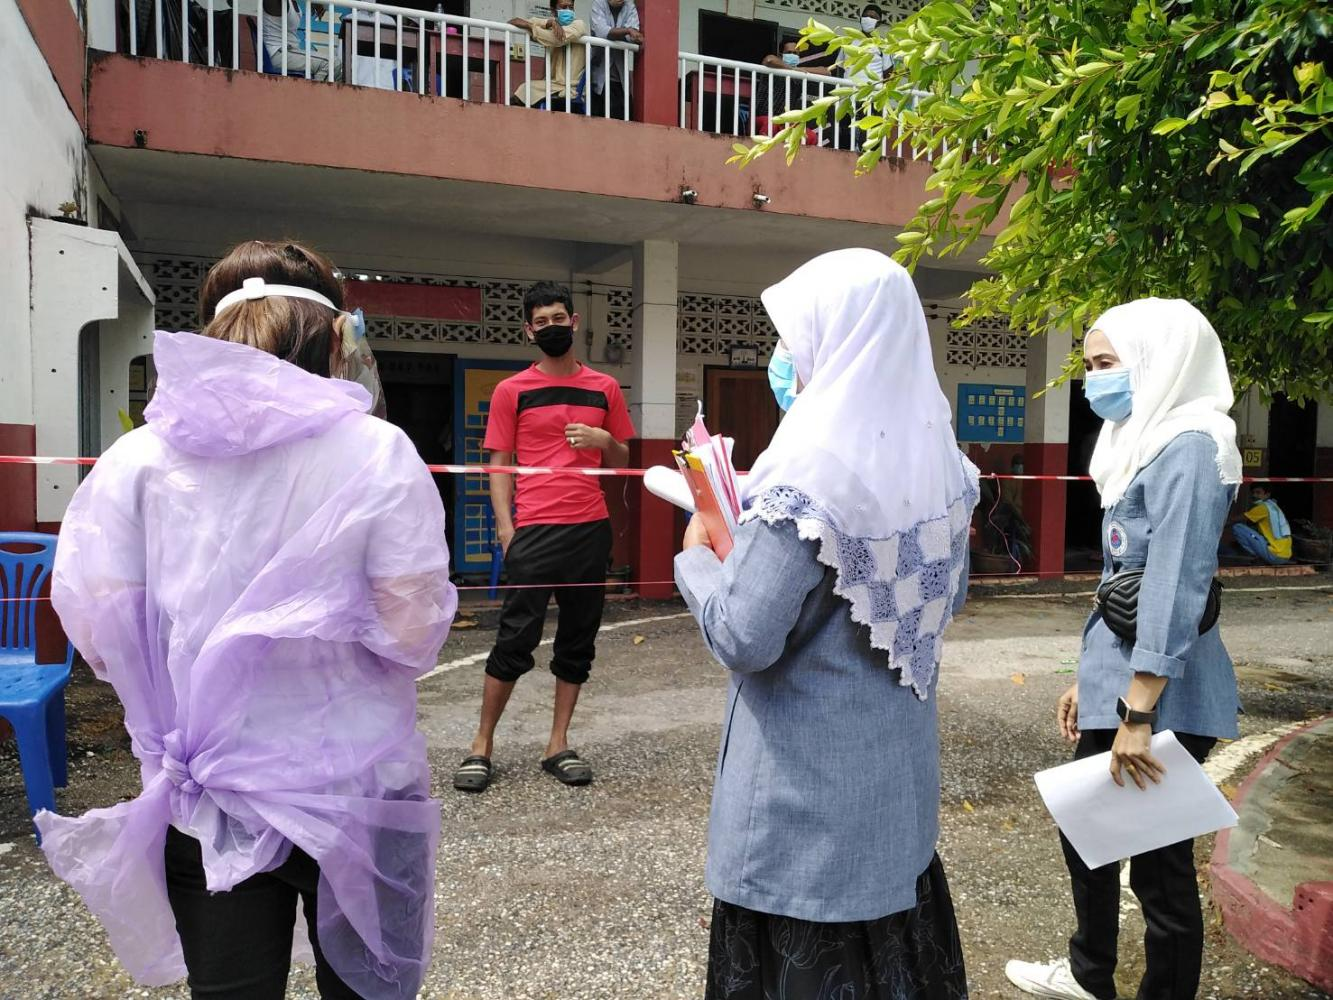 Healthcare workers drop by for a regular check on the health of a quarantined individual at Darunsart Witthaya School in Sai Buri district of Pattani.(Photo by Abdulloh Benjakat)